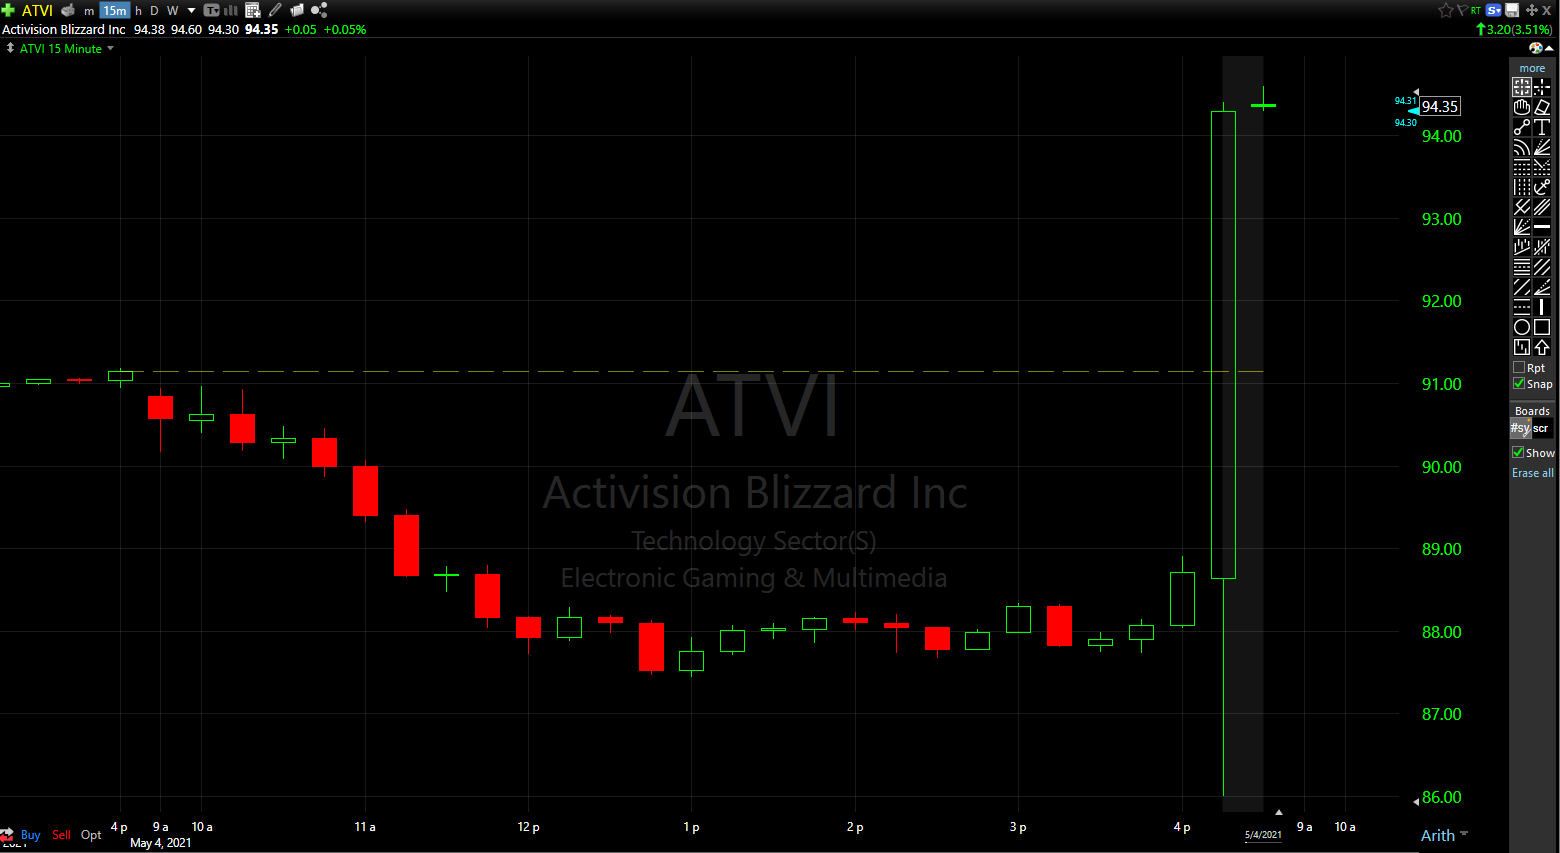 Activision Blizzard (ATVI) stock is up afterhours on a solid Q1 2021 earnings release.